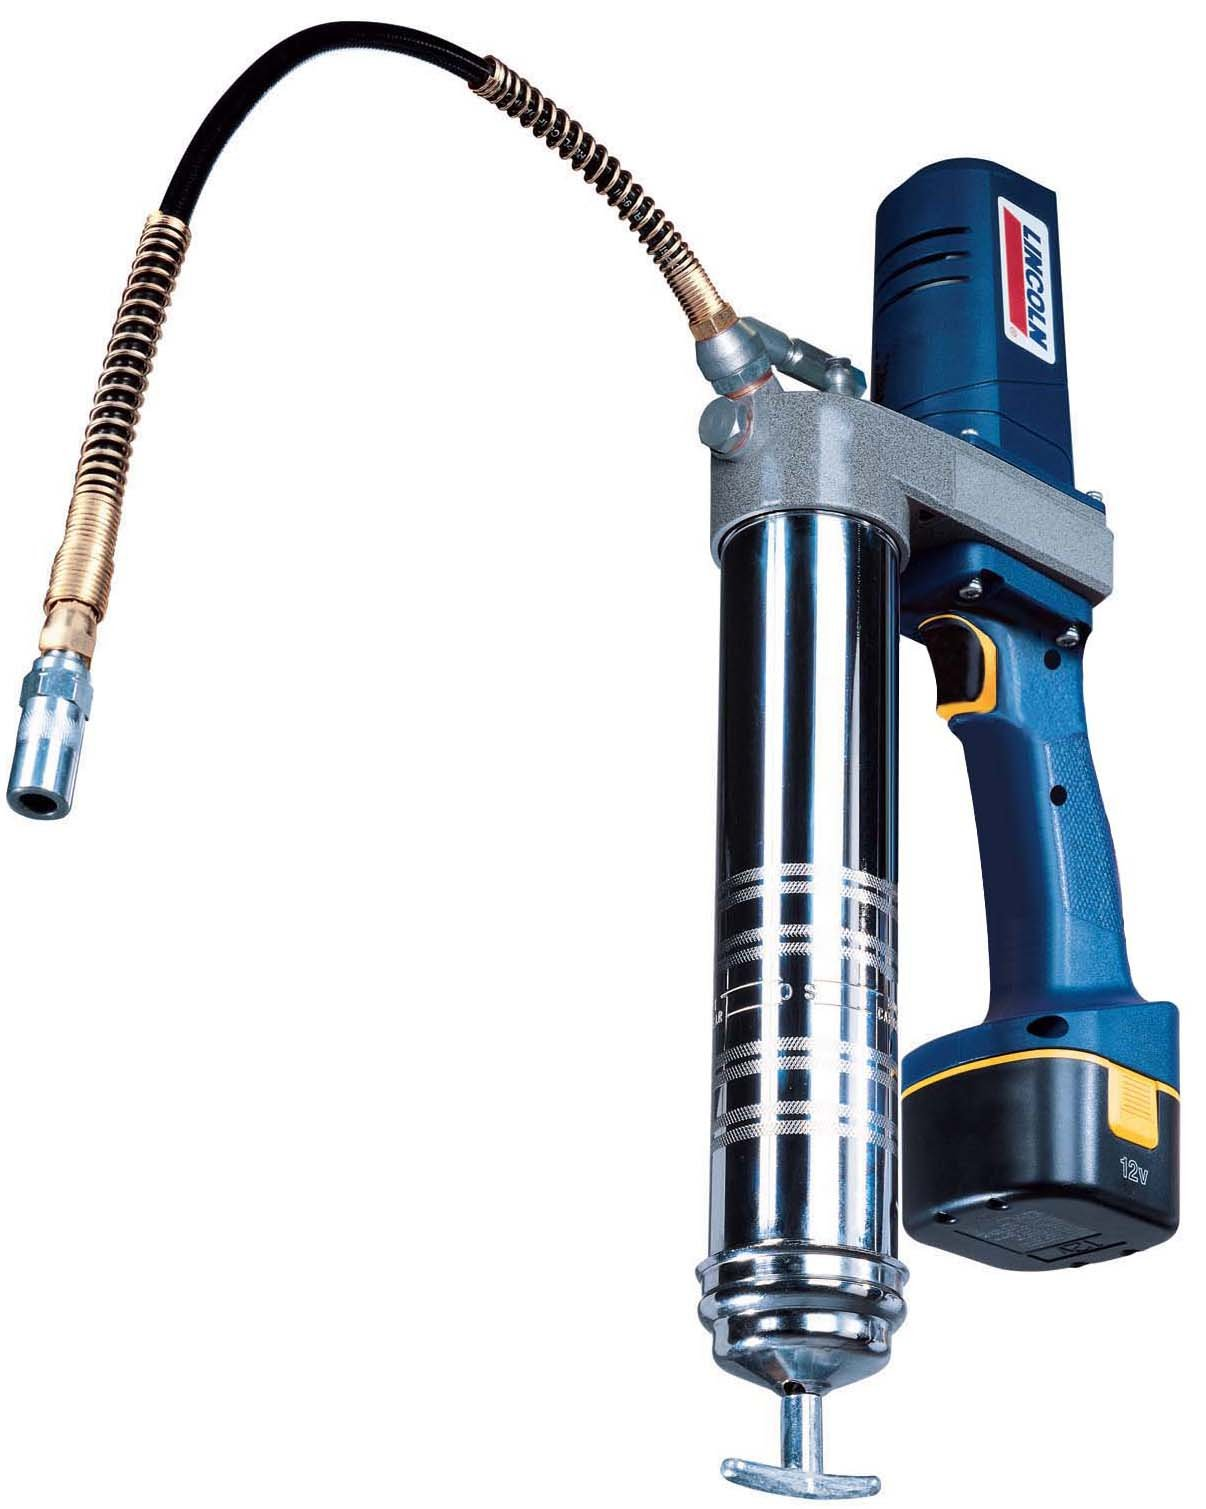 Lincoln Lubrication 1242 12 Volt DC Cordless Rechargeable Grease Gun with Case and Charger by Lincoln Electric